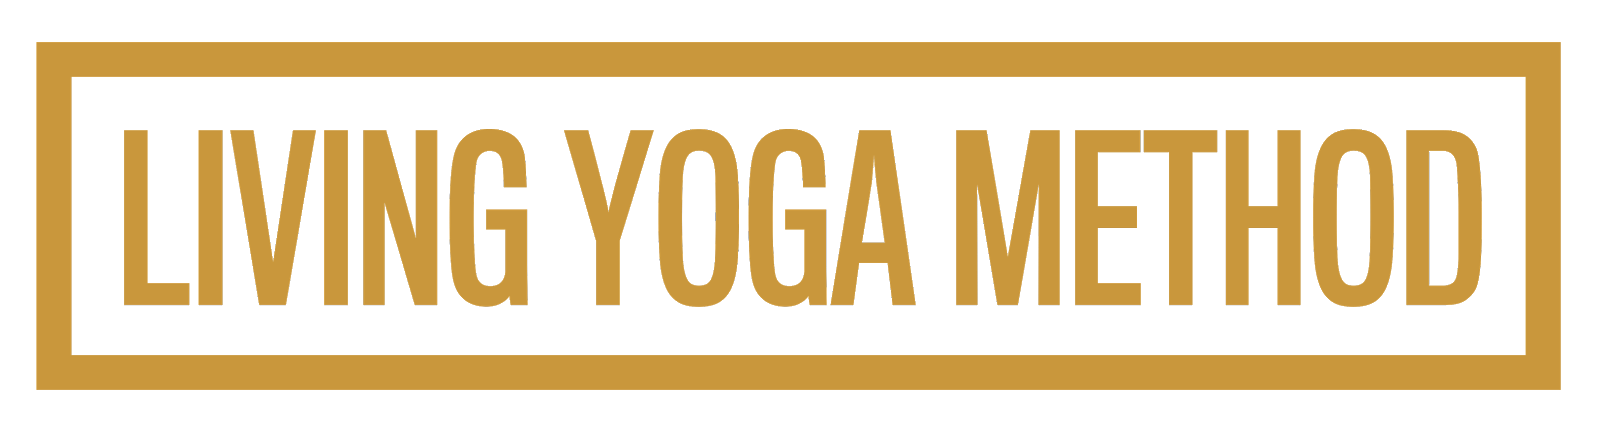 The Living Yoga Method